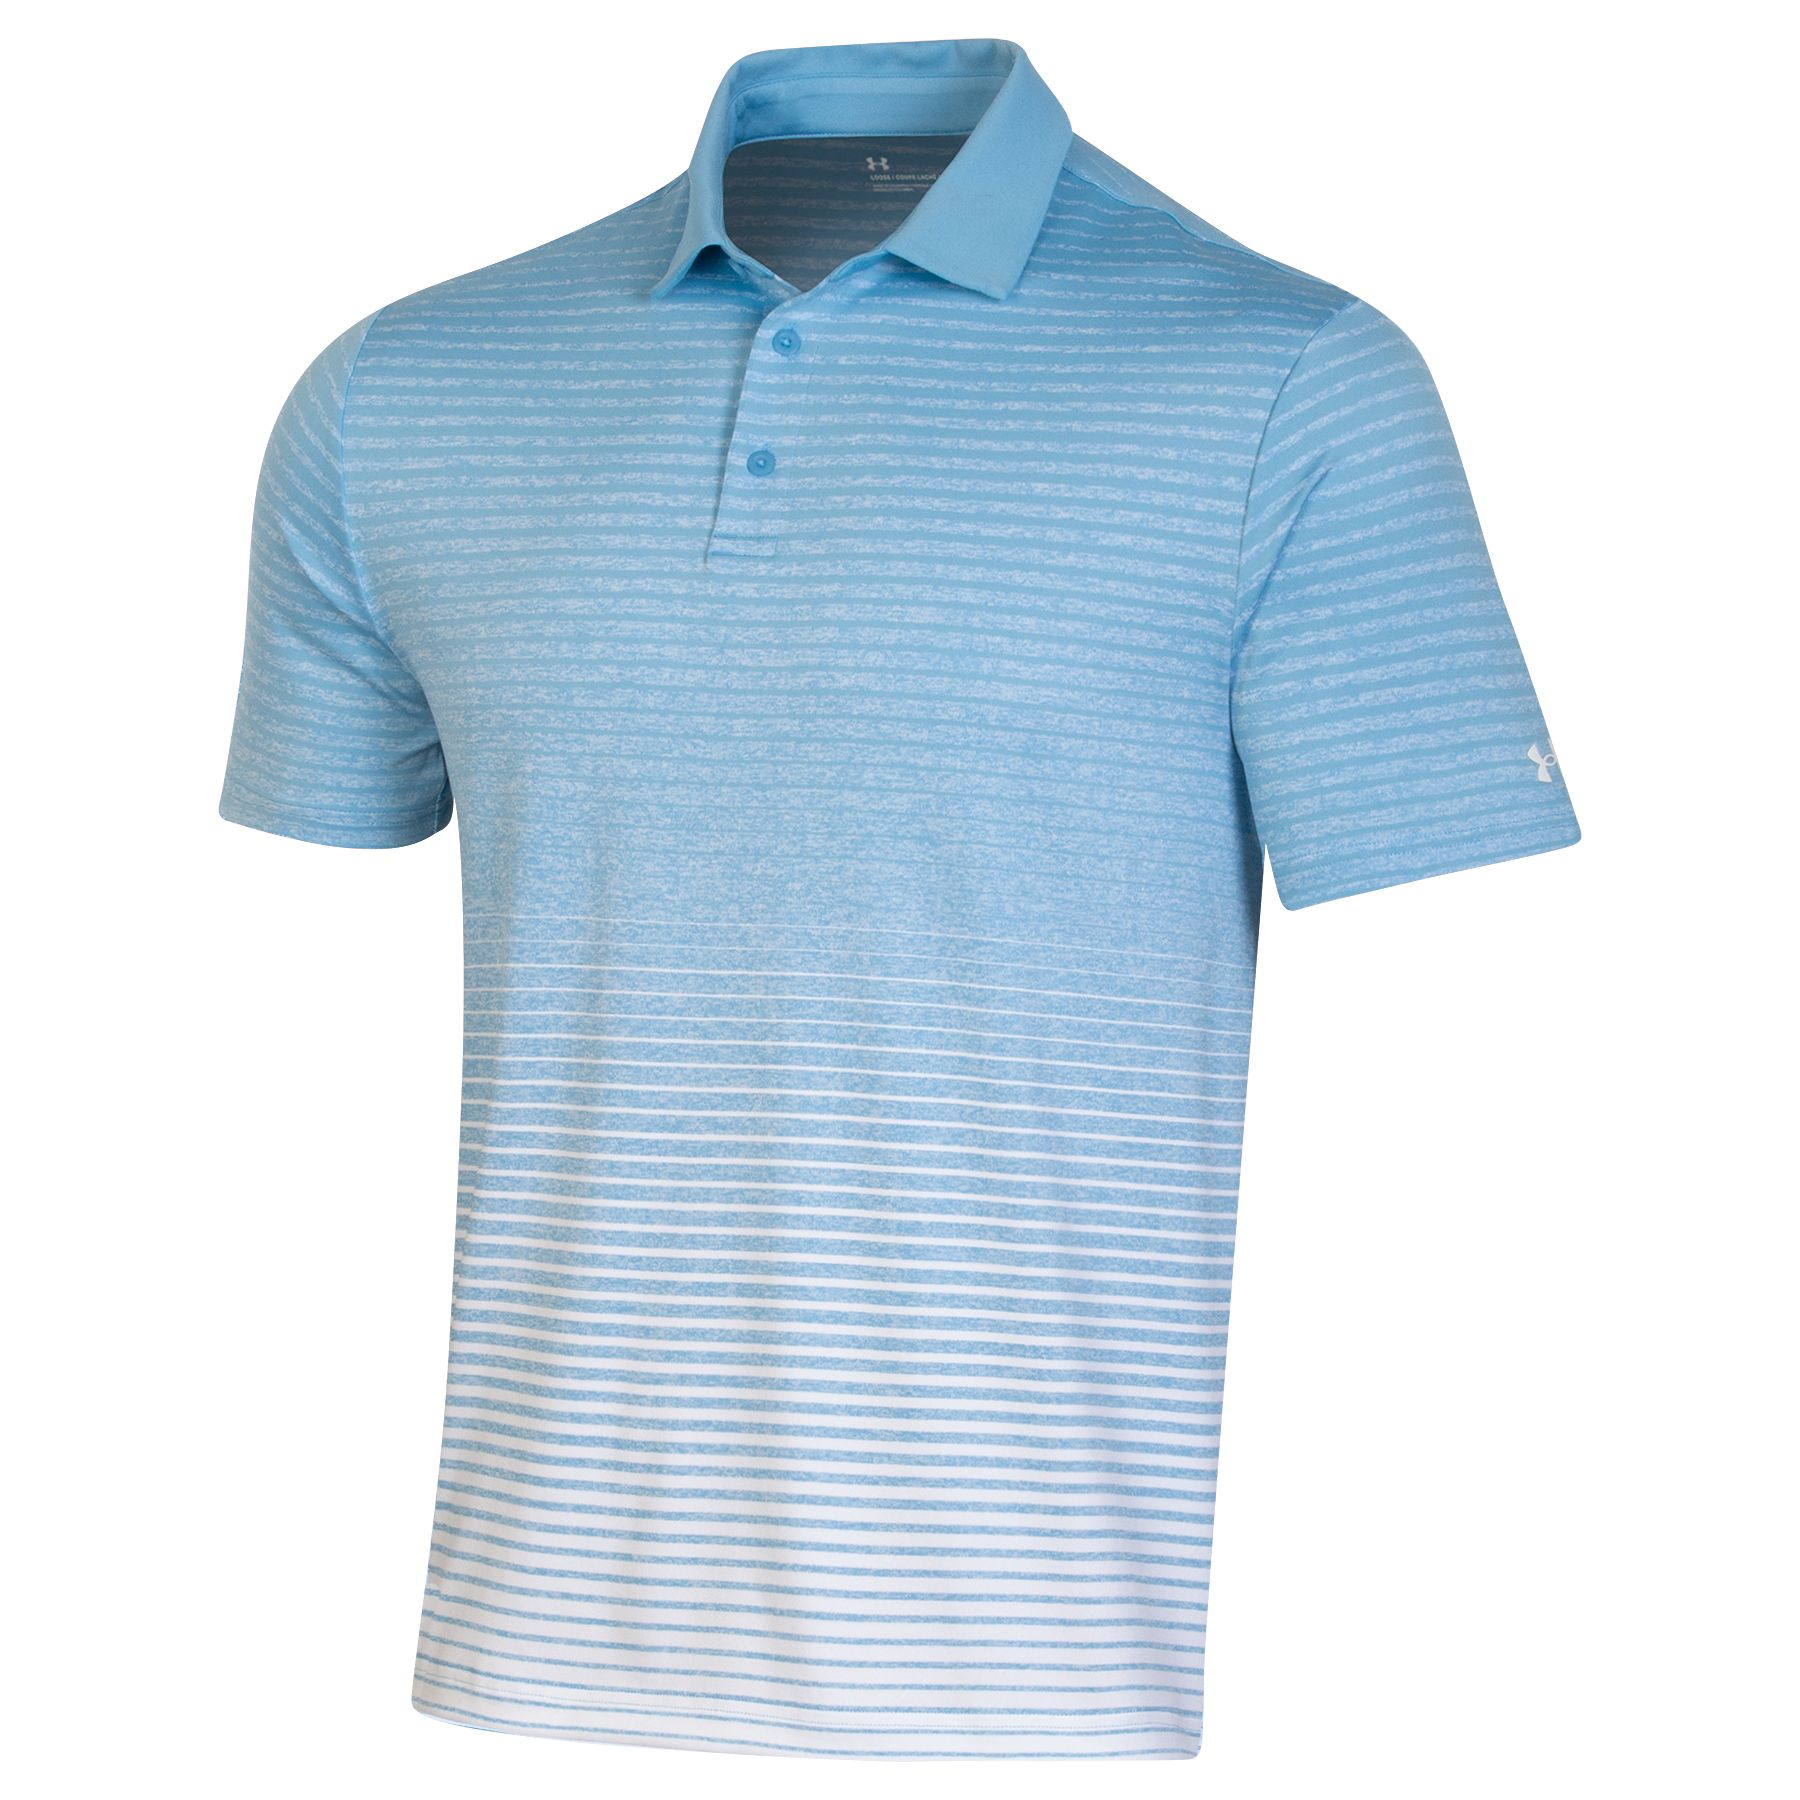 Under Armour Men's 2021 Playoff 2.0 Up & Down Polo